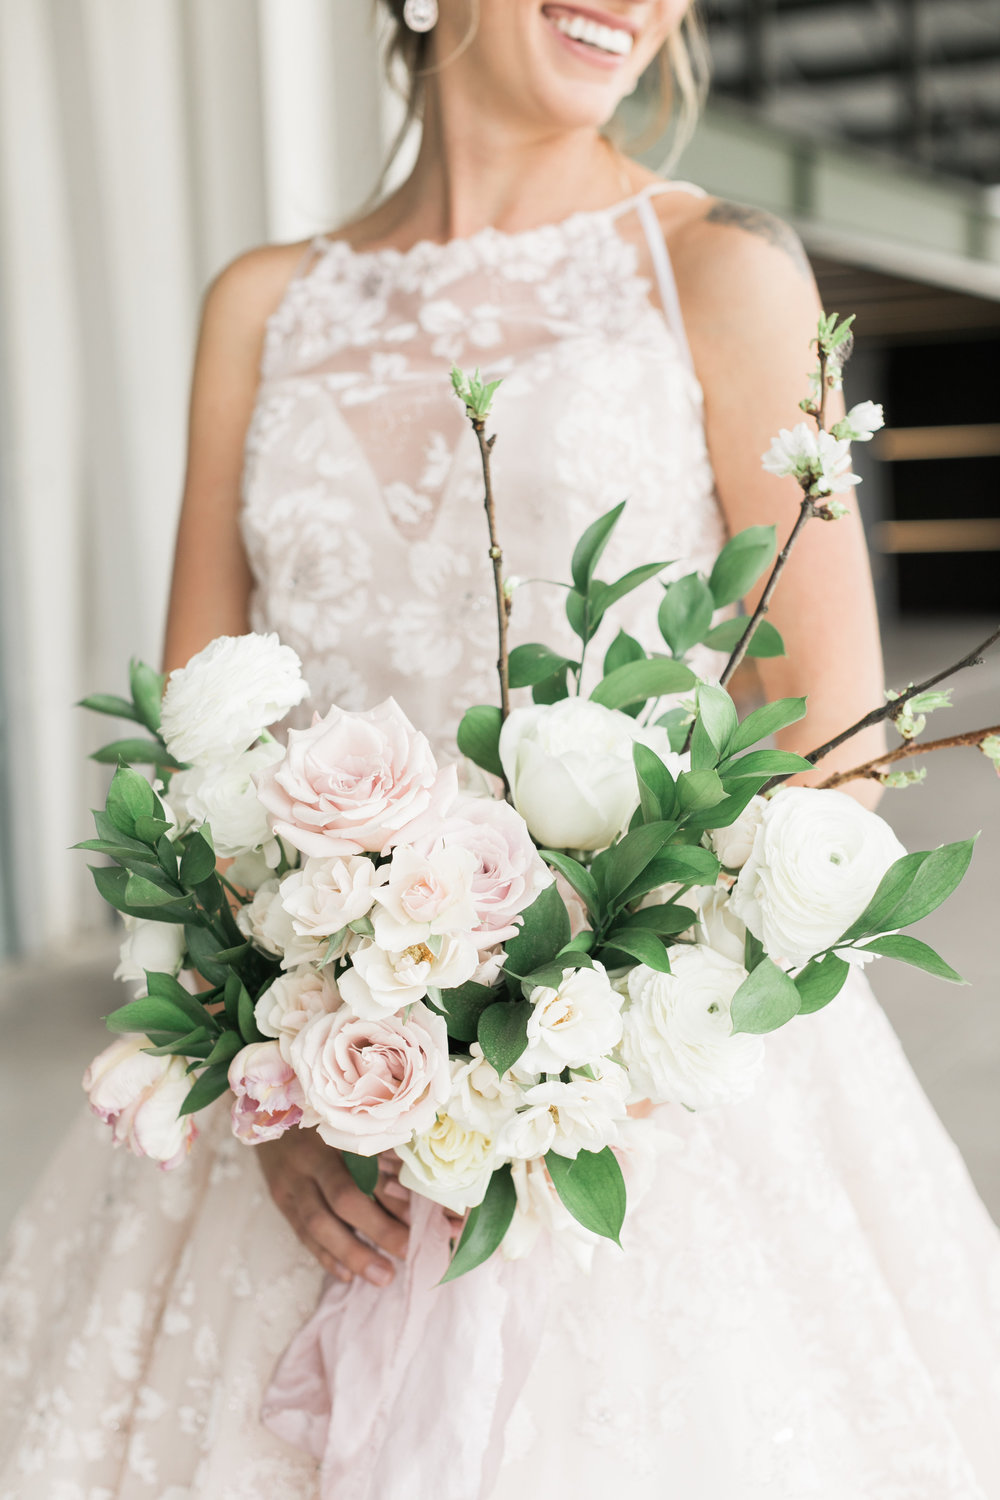 Cherry Blossom Inspired Wedding - Bridal Bouquet in Blush and White